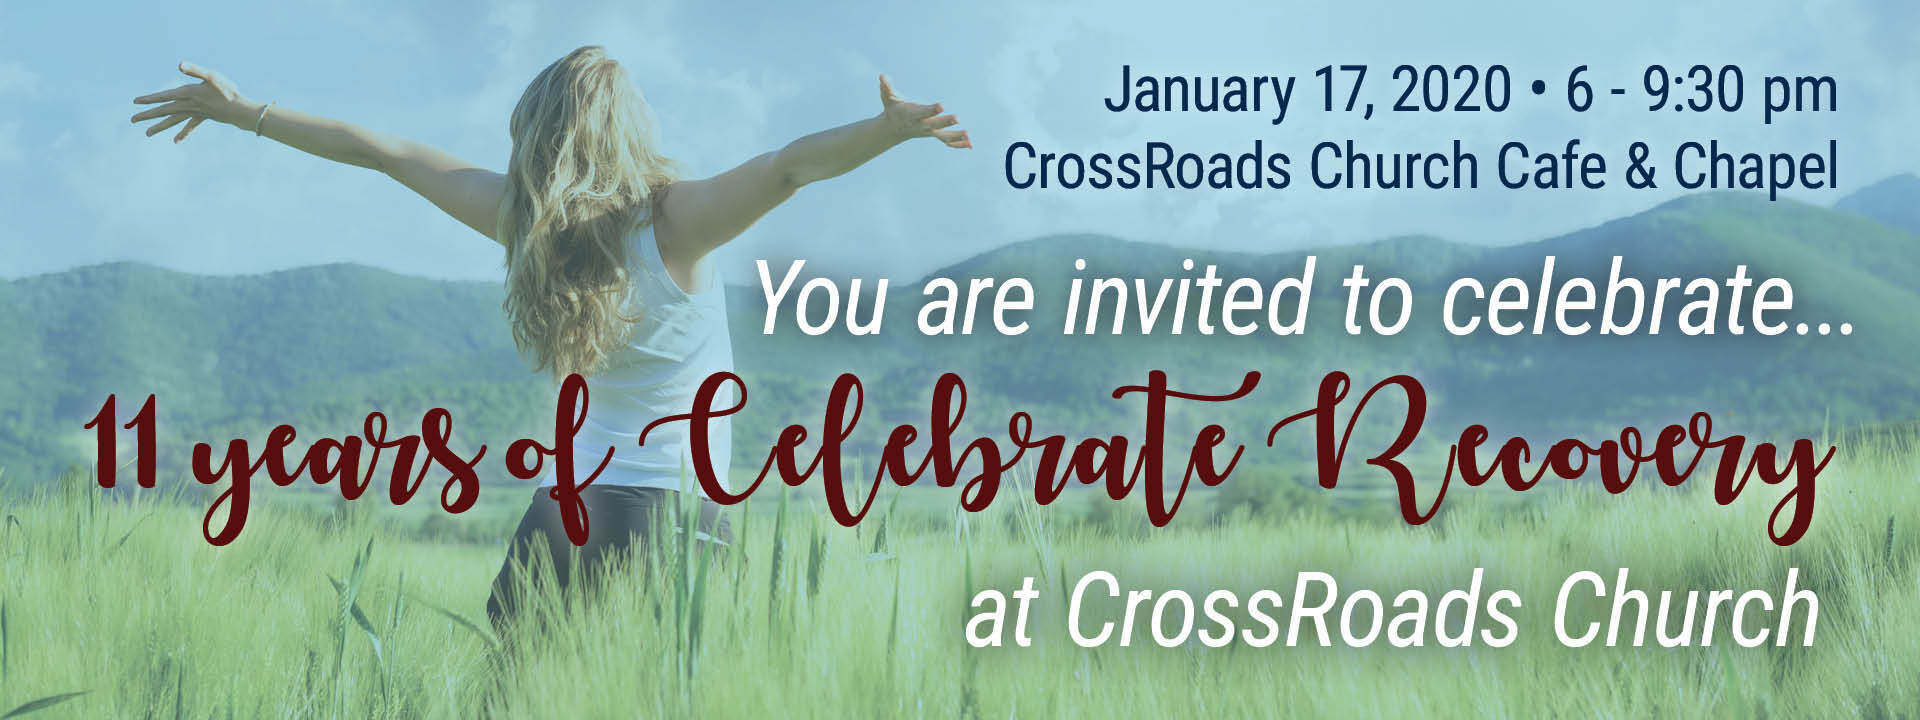 11 years of celebrate recovery at crossroads